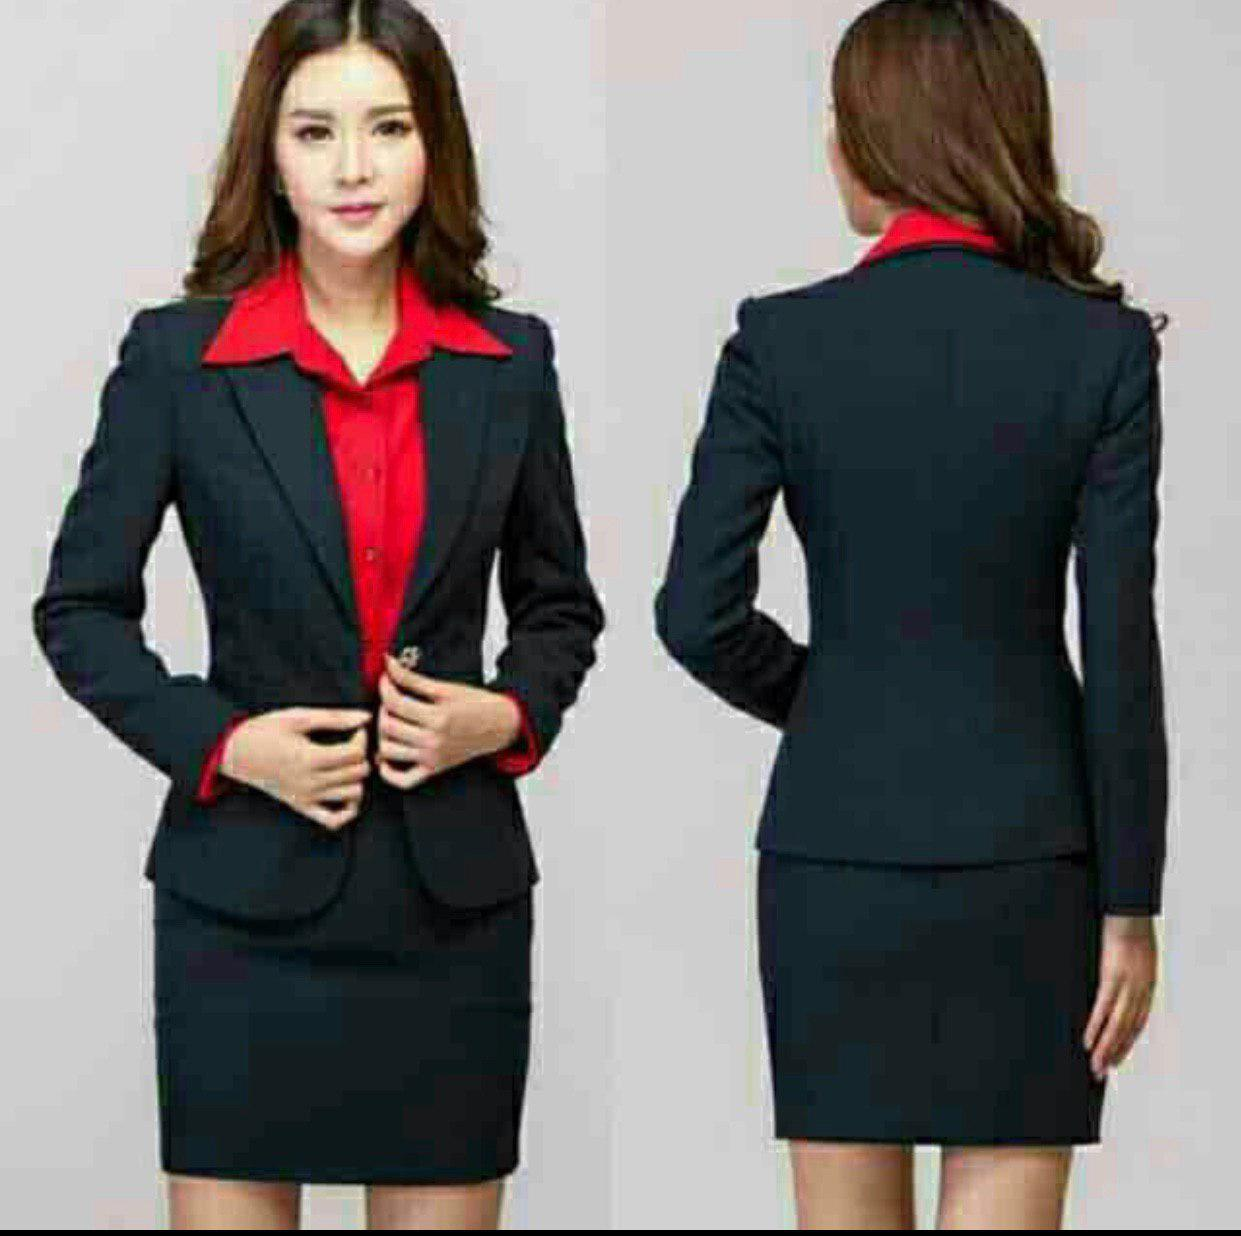 c6b0ecf601 Blazers for Women for sale - Womens Blazer Online Deals & Prices in ...